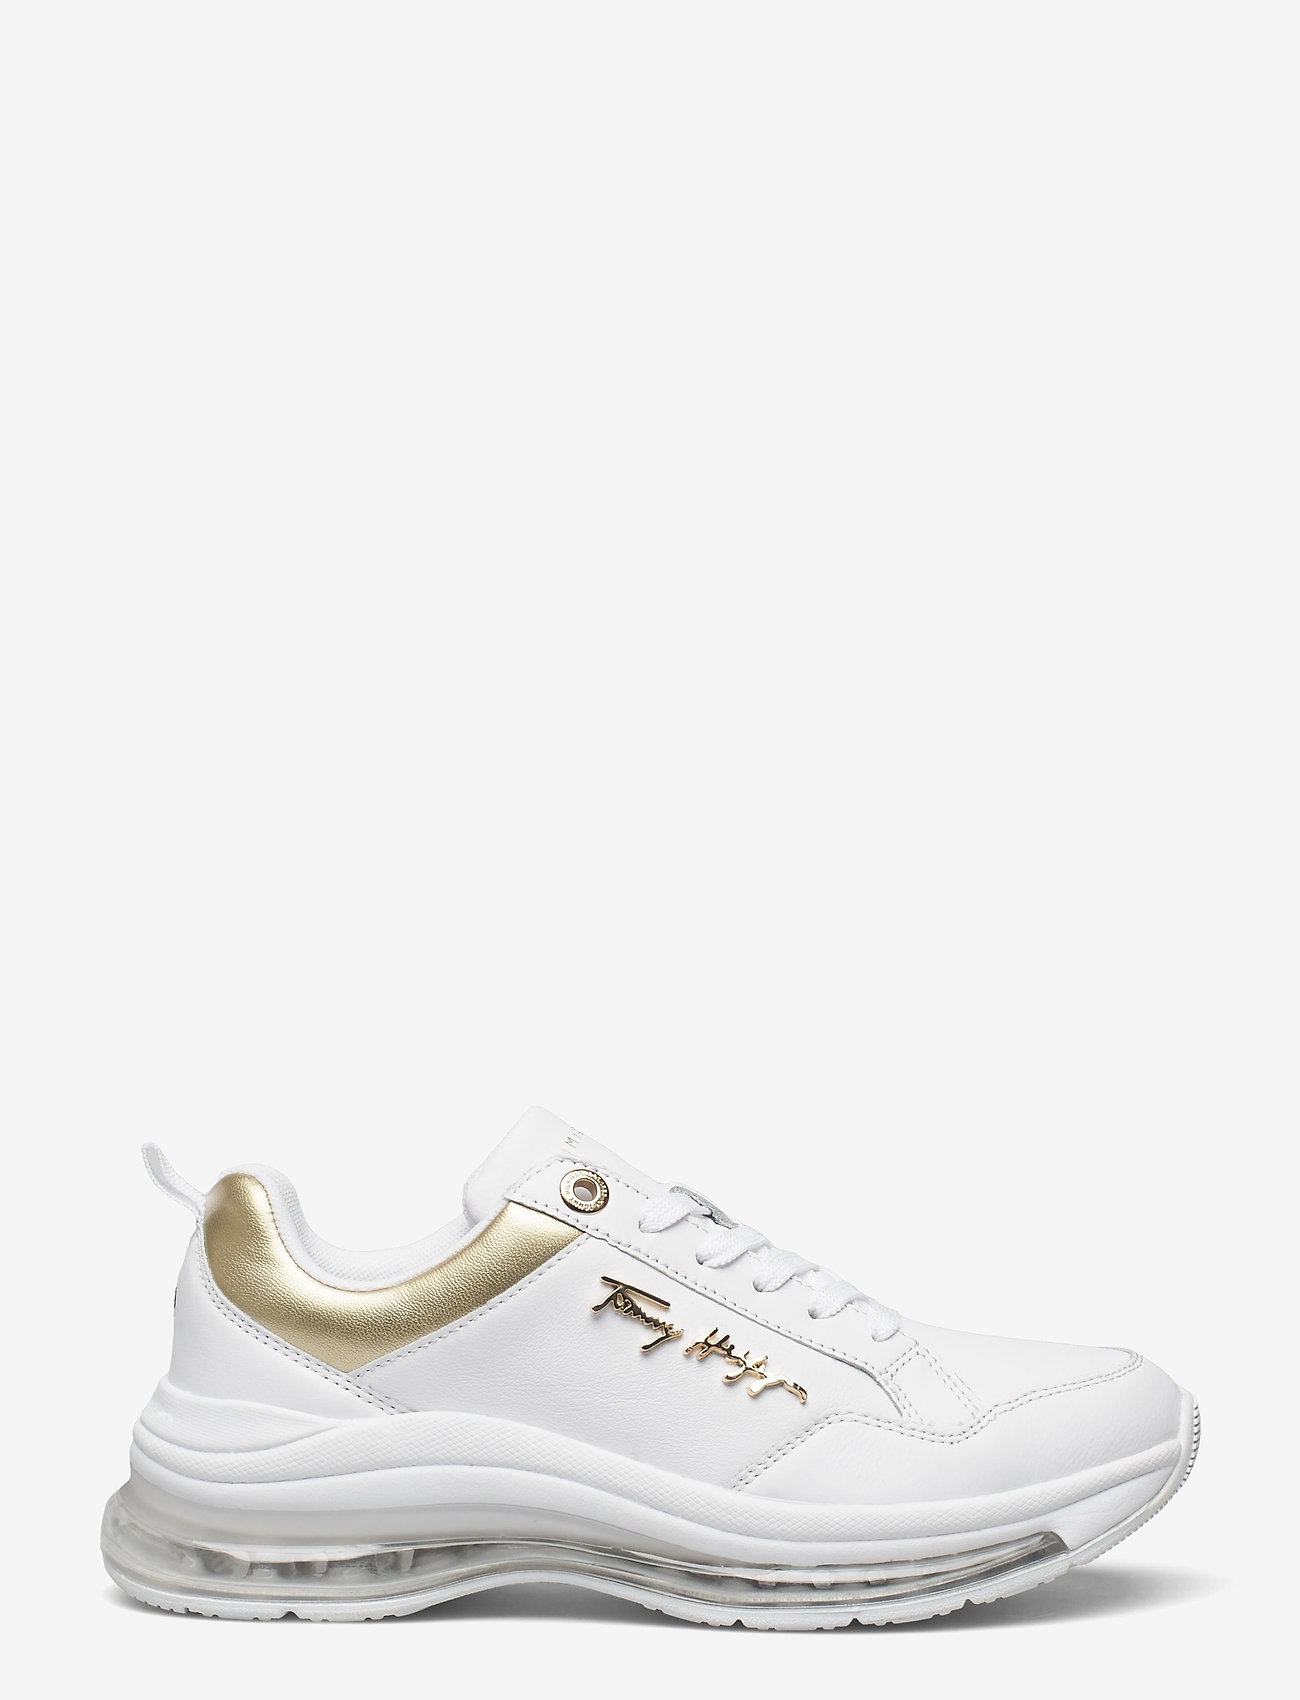 Tommy Hilfiger - CITY AIR RUNNER METALLIC - low top sneakers - white - 0